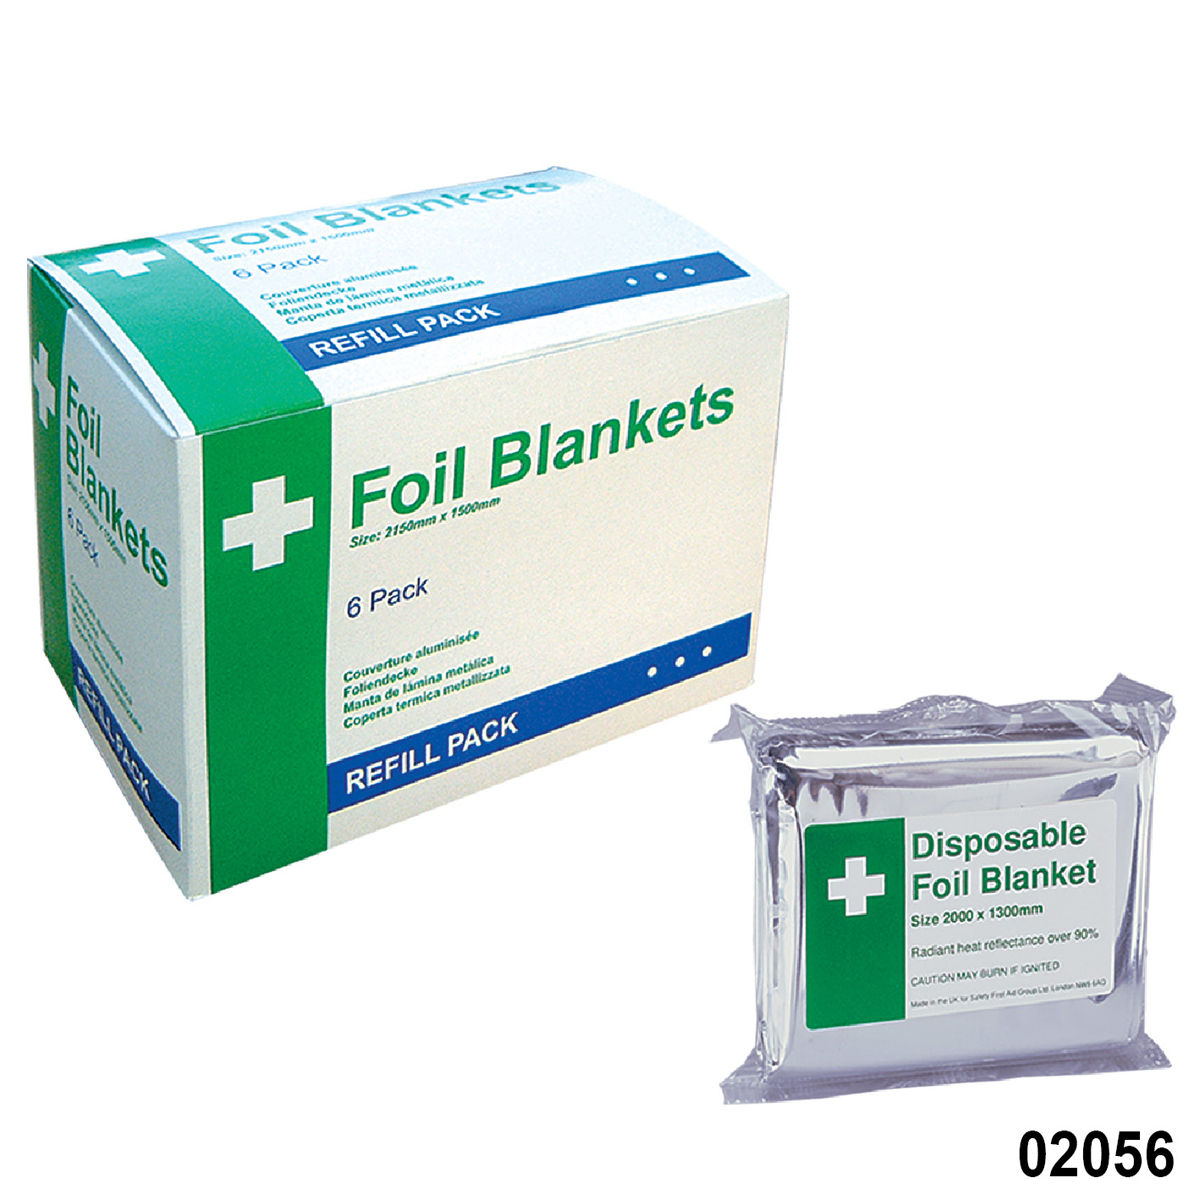 Disposable Foil Blankets Pack of 6